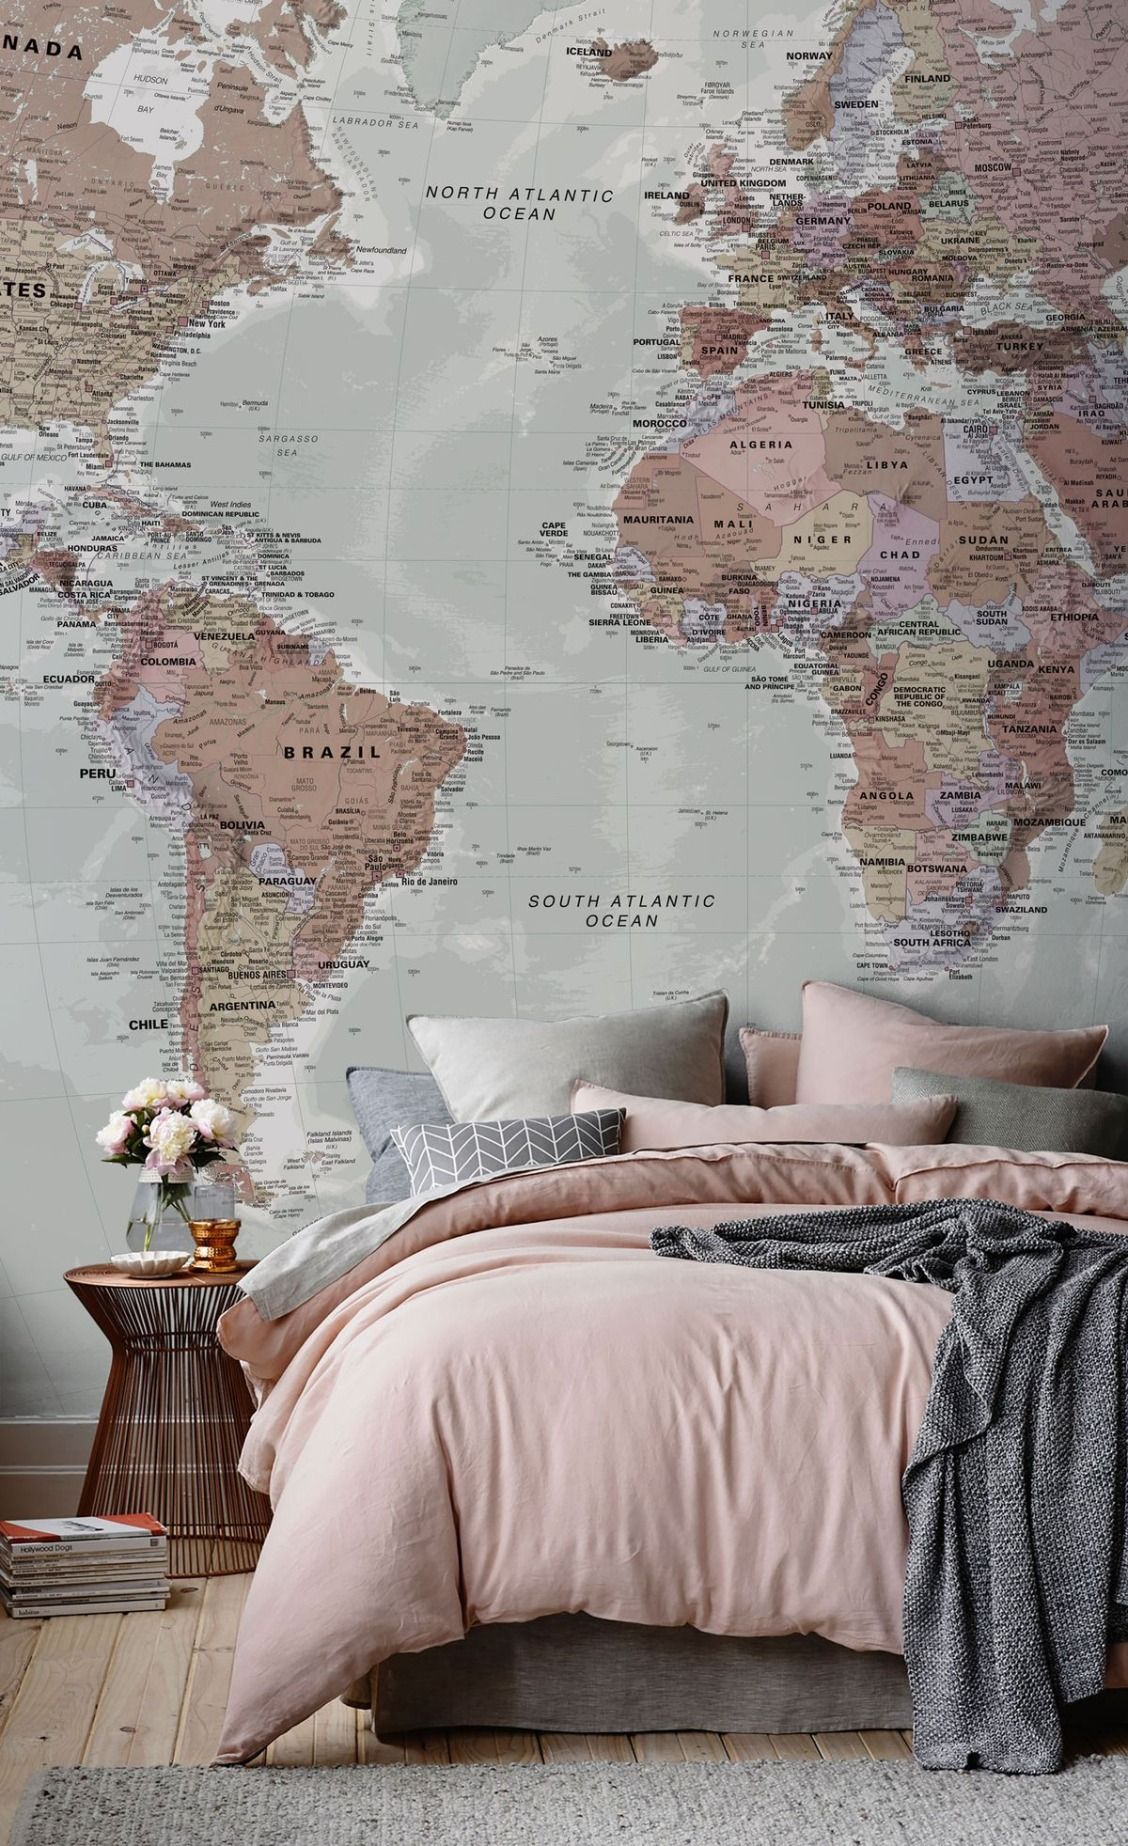 Classic world map wallpaper stylish map mural muralswallpaper